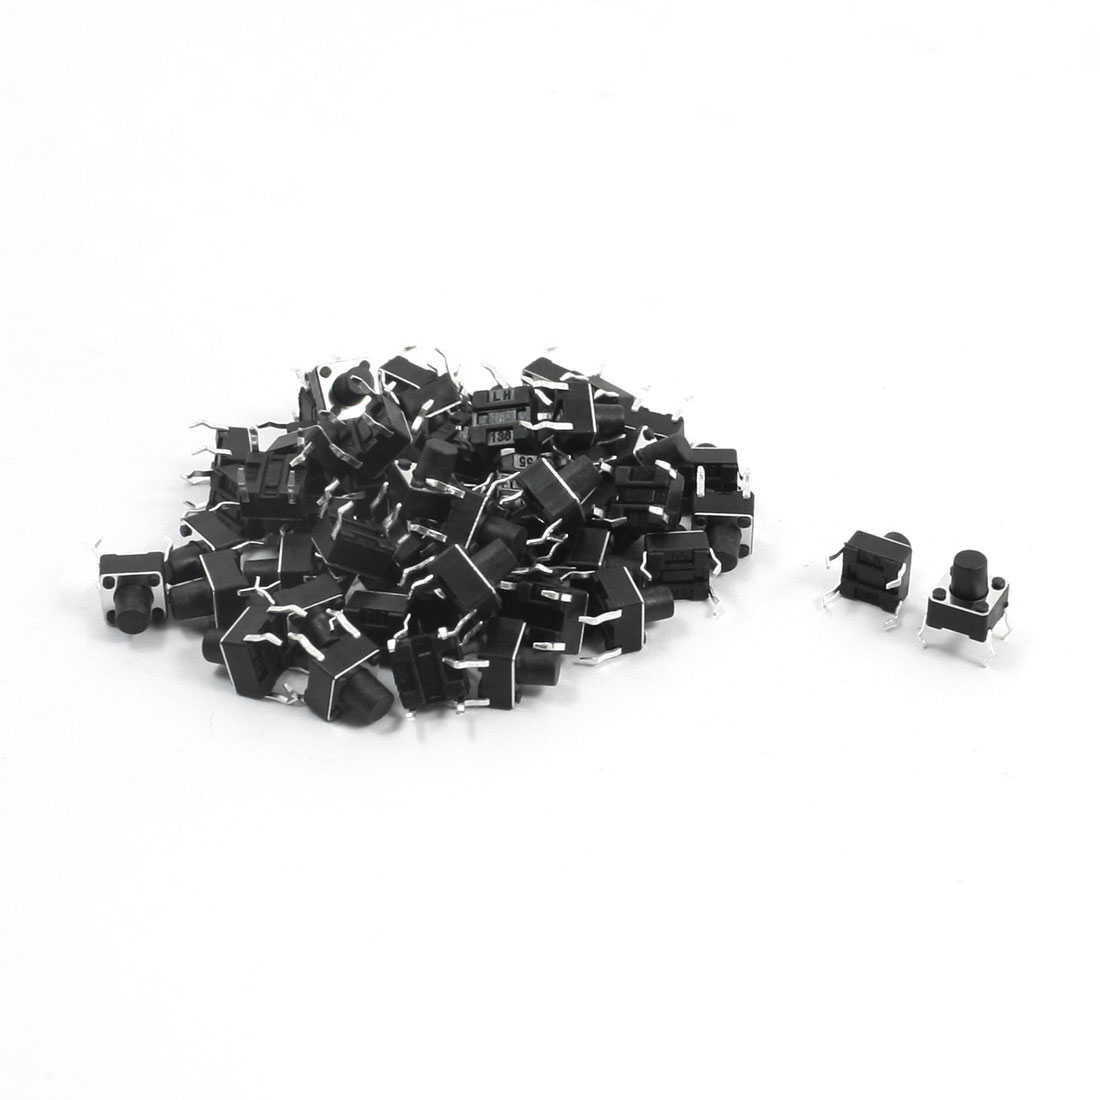 55Pcs Momentary PCB Pushbutton Push Button Tact Tactile Switch DIP 6mmx6mmx7mm